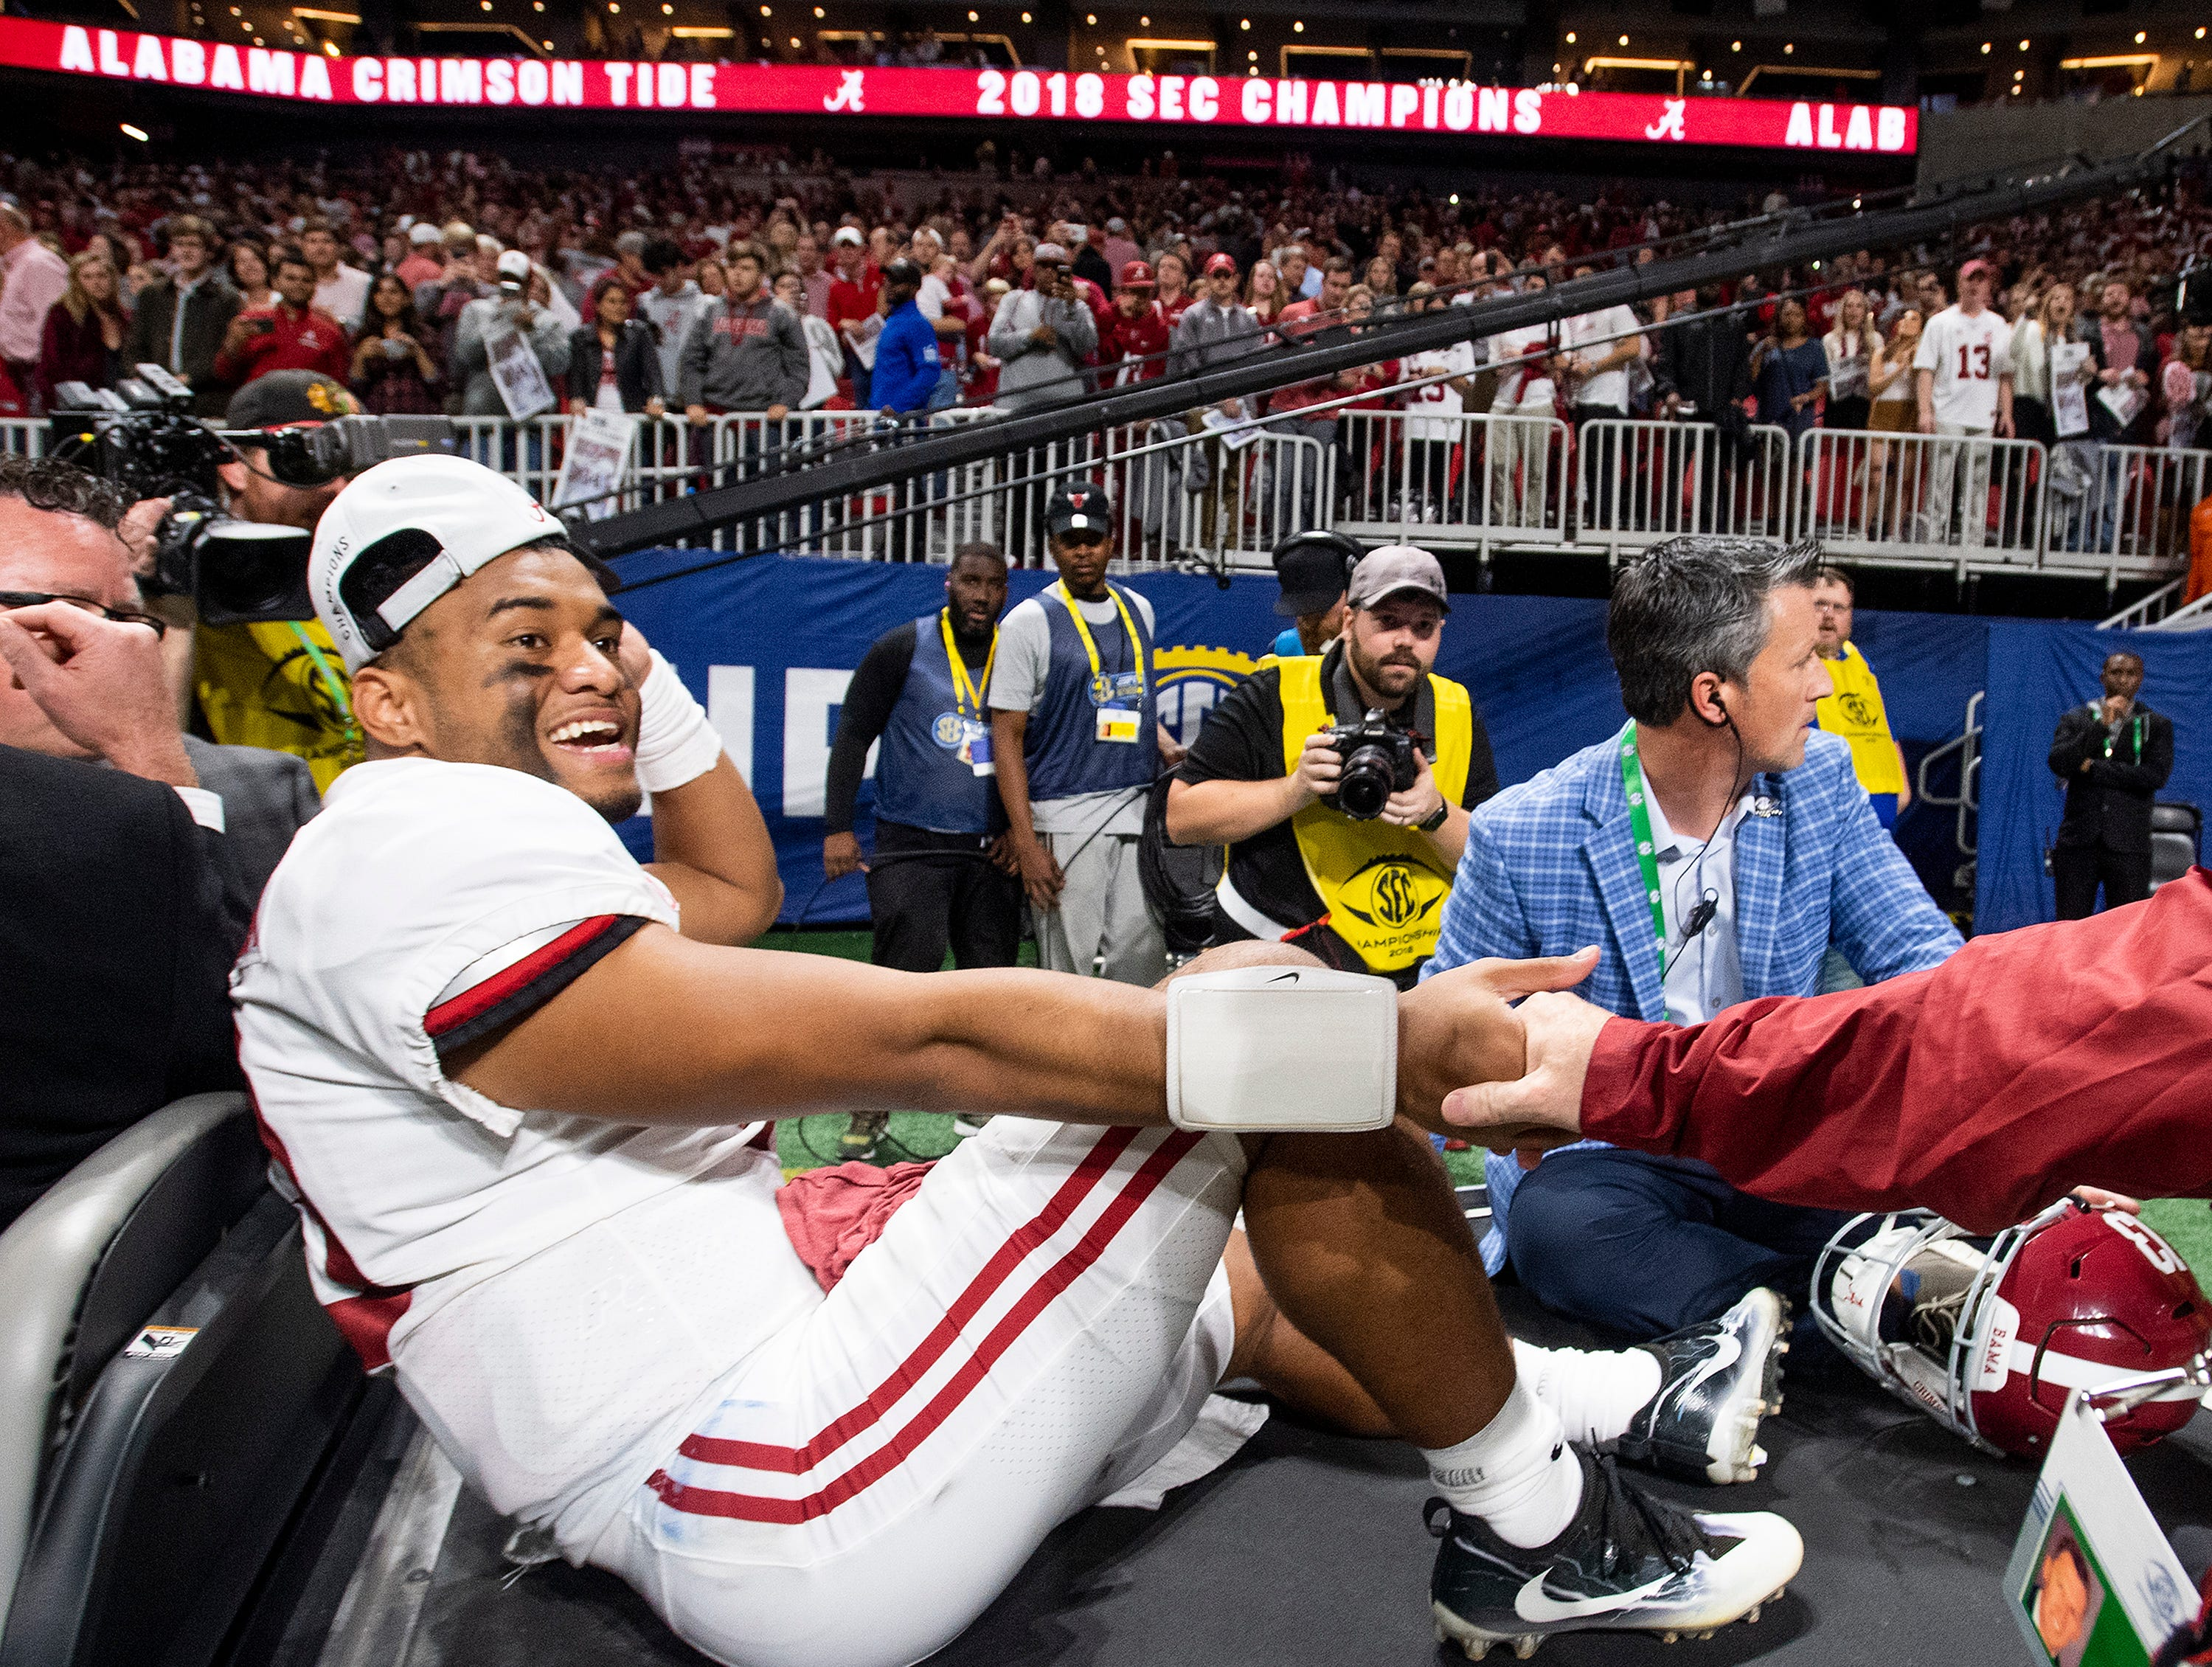 Injured Alabama quarterback Tua Tagovailoa (13) is carted off of the field after Alabama defeated Georgia in the SEC Championship Game at Mercedes Benz Stadium in Atlanta, Ga., on Saturday December 1, 2018.